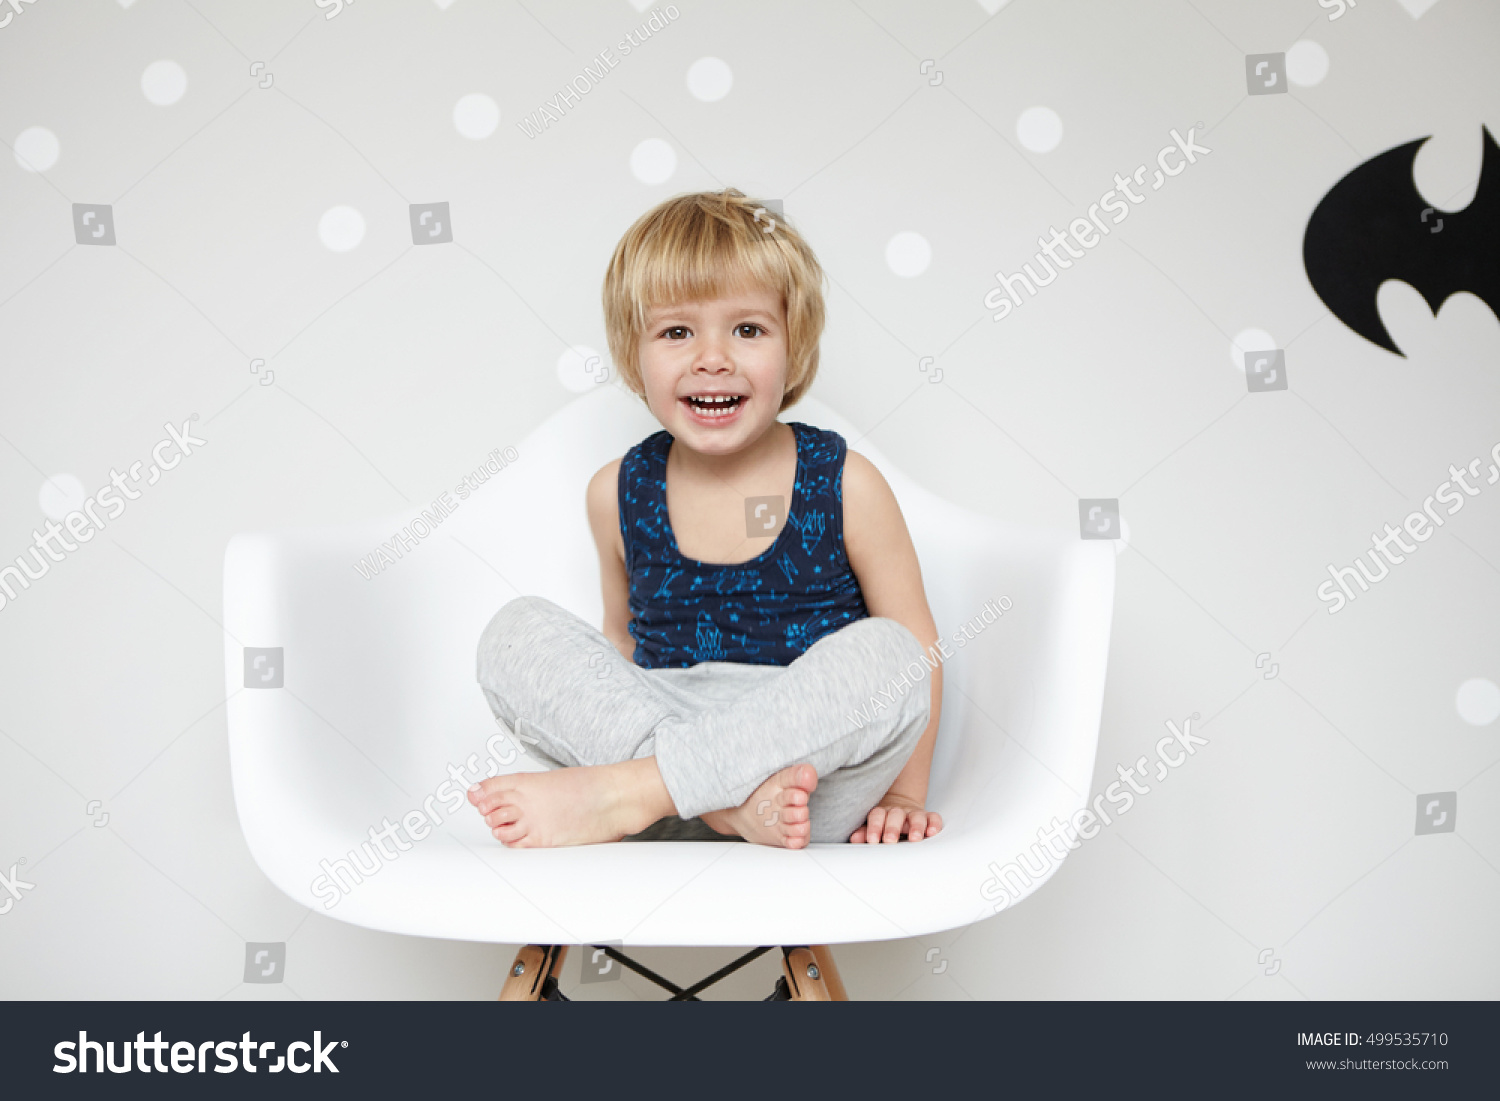 Portrait playful toddler fair hair wearing stock photo for Toddler sitting chair